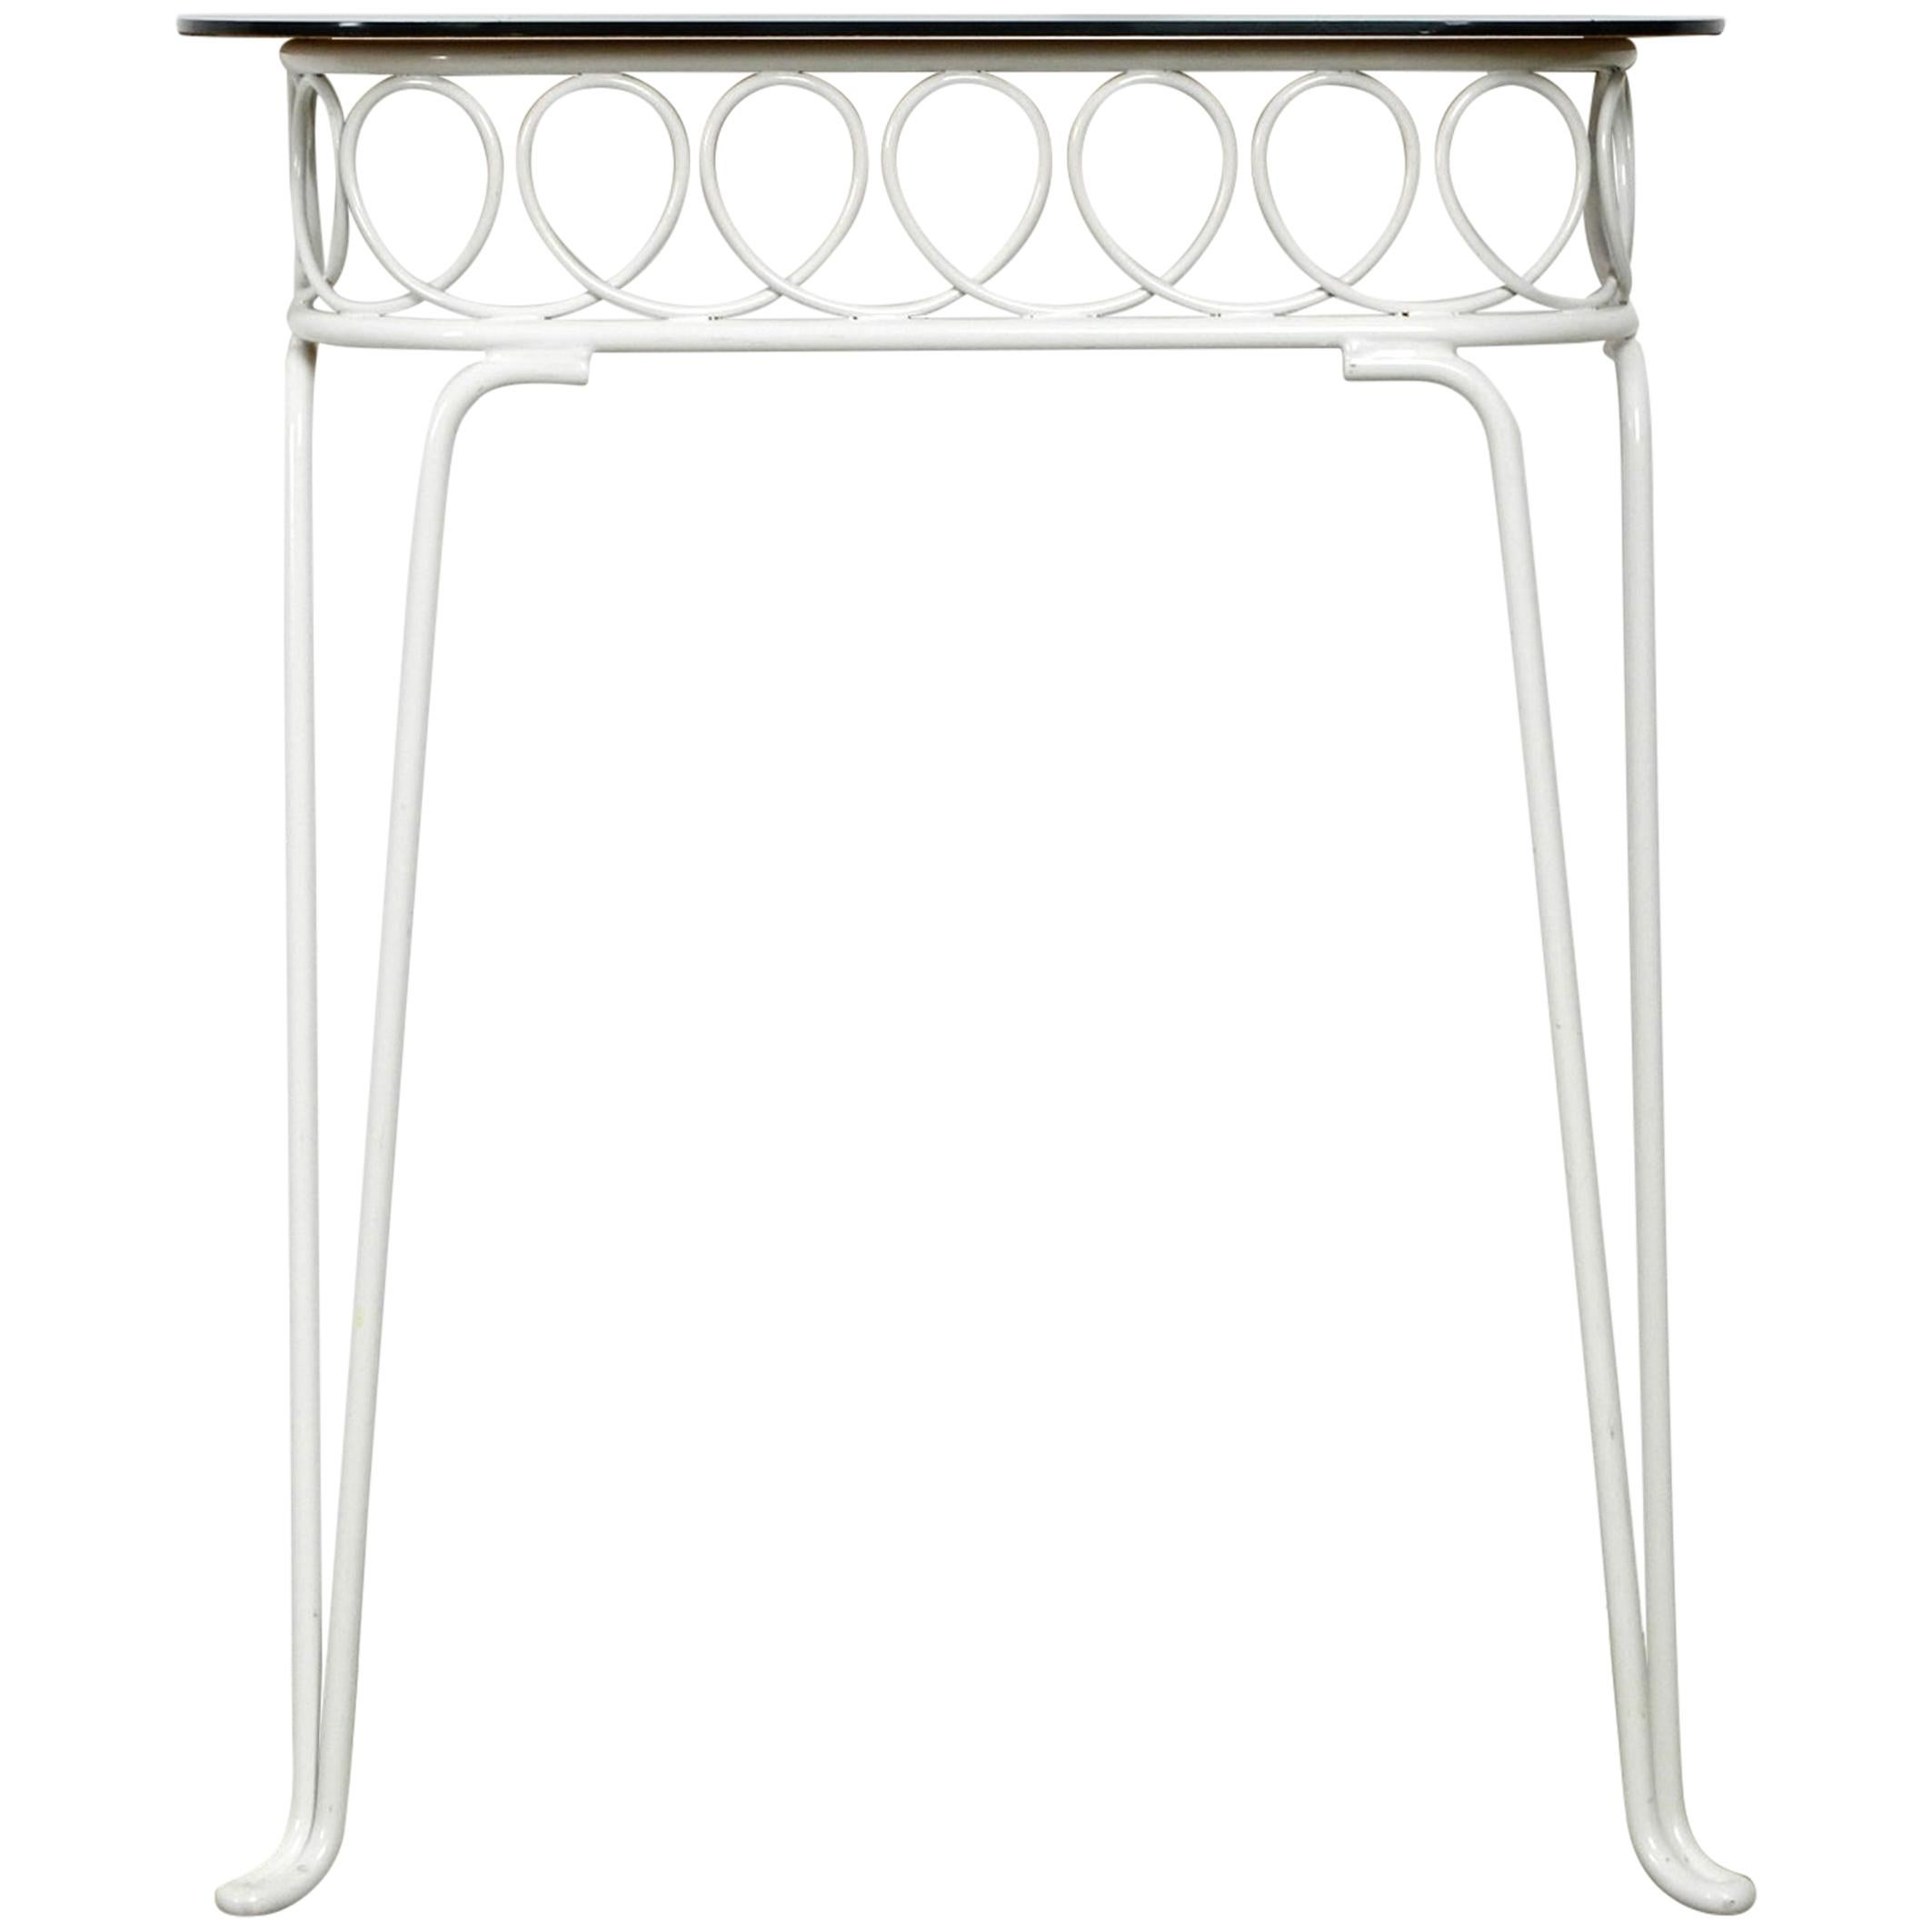 Midcentury Matal Wall Console Table with Glass Shelf, Münchner Boulevard Möbel